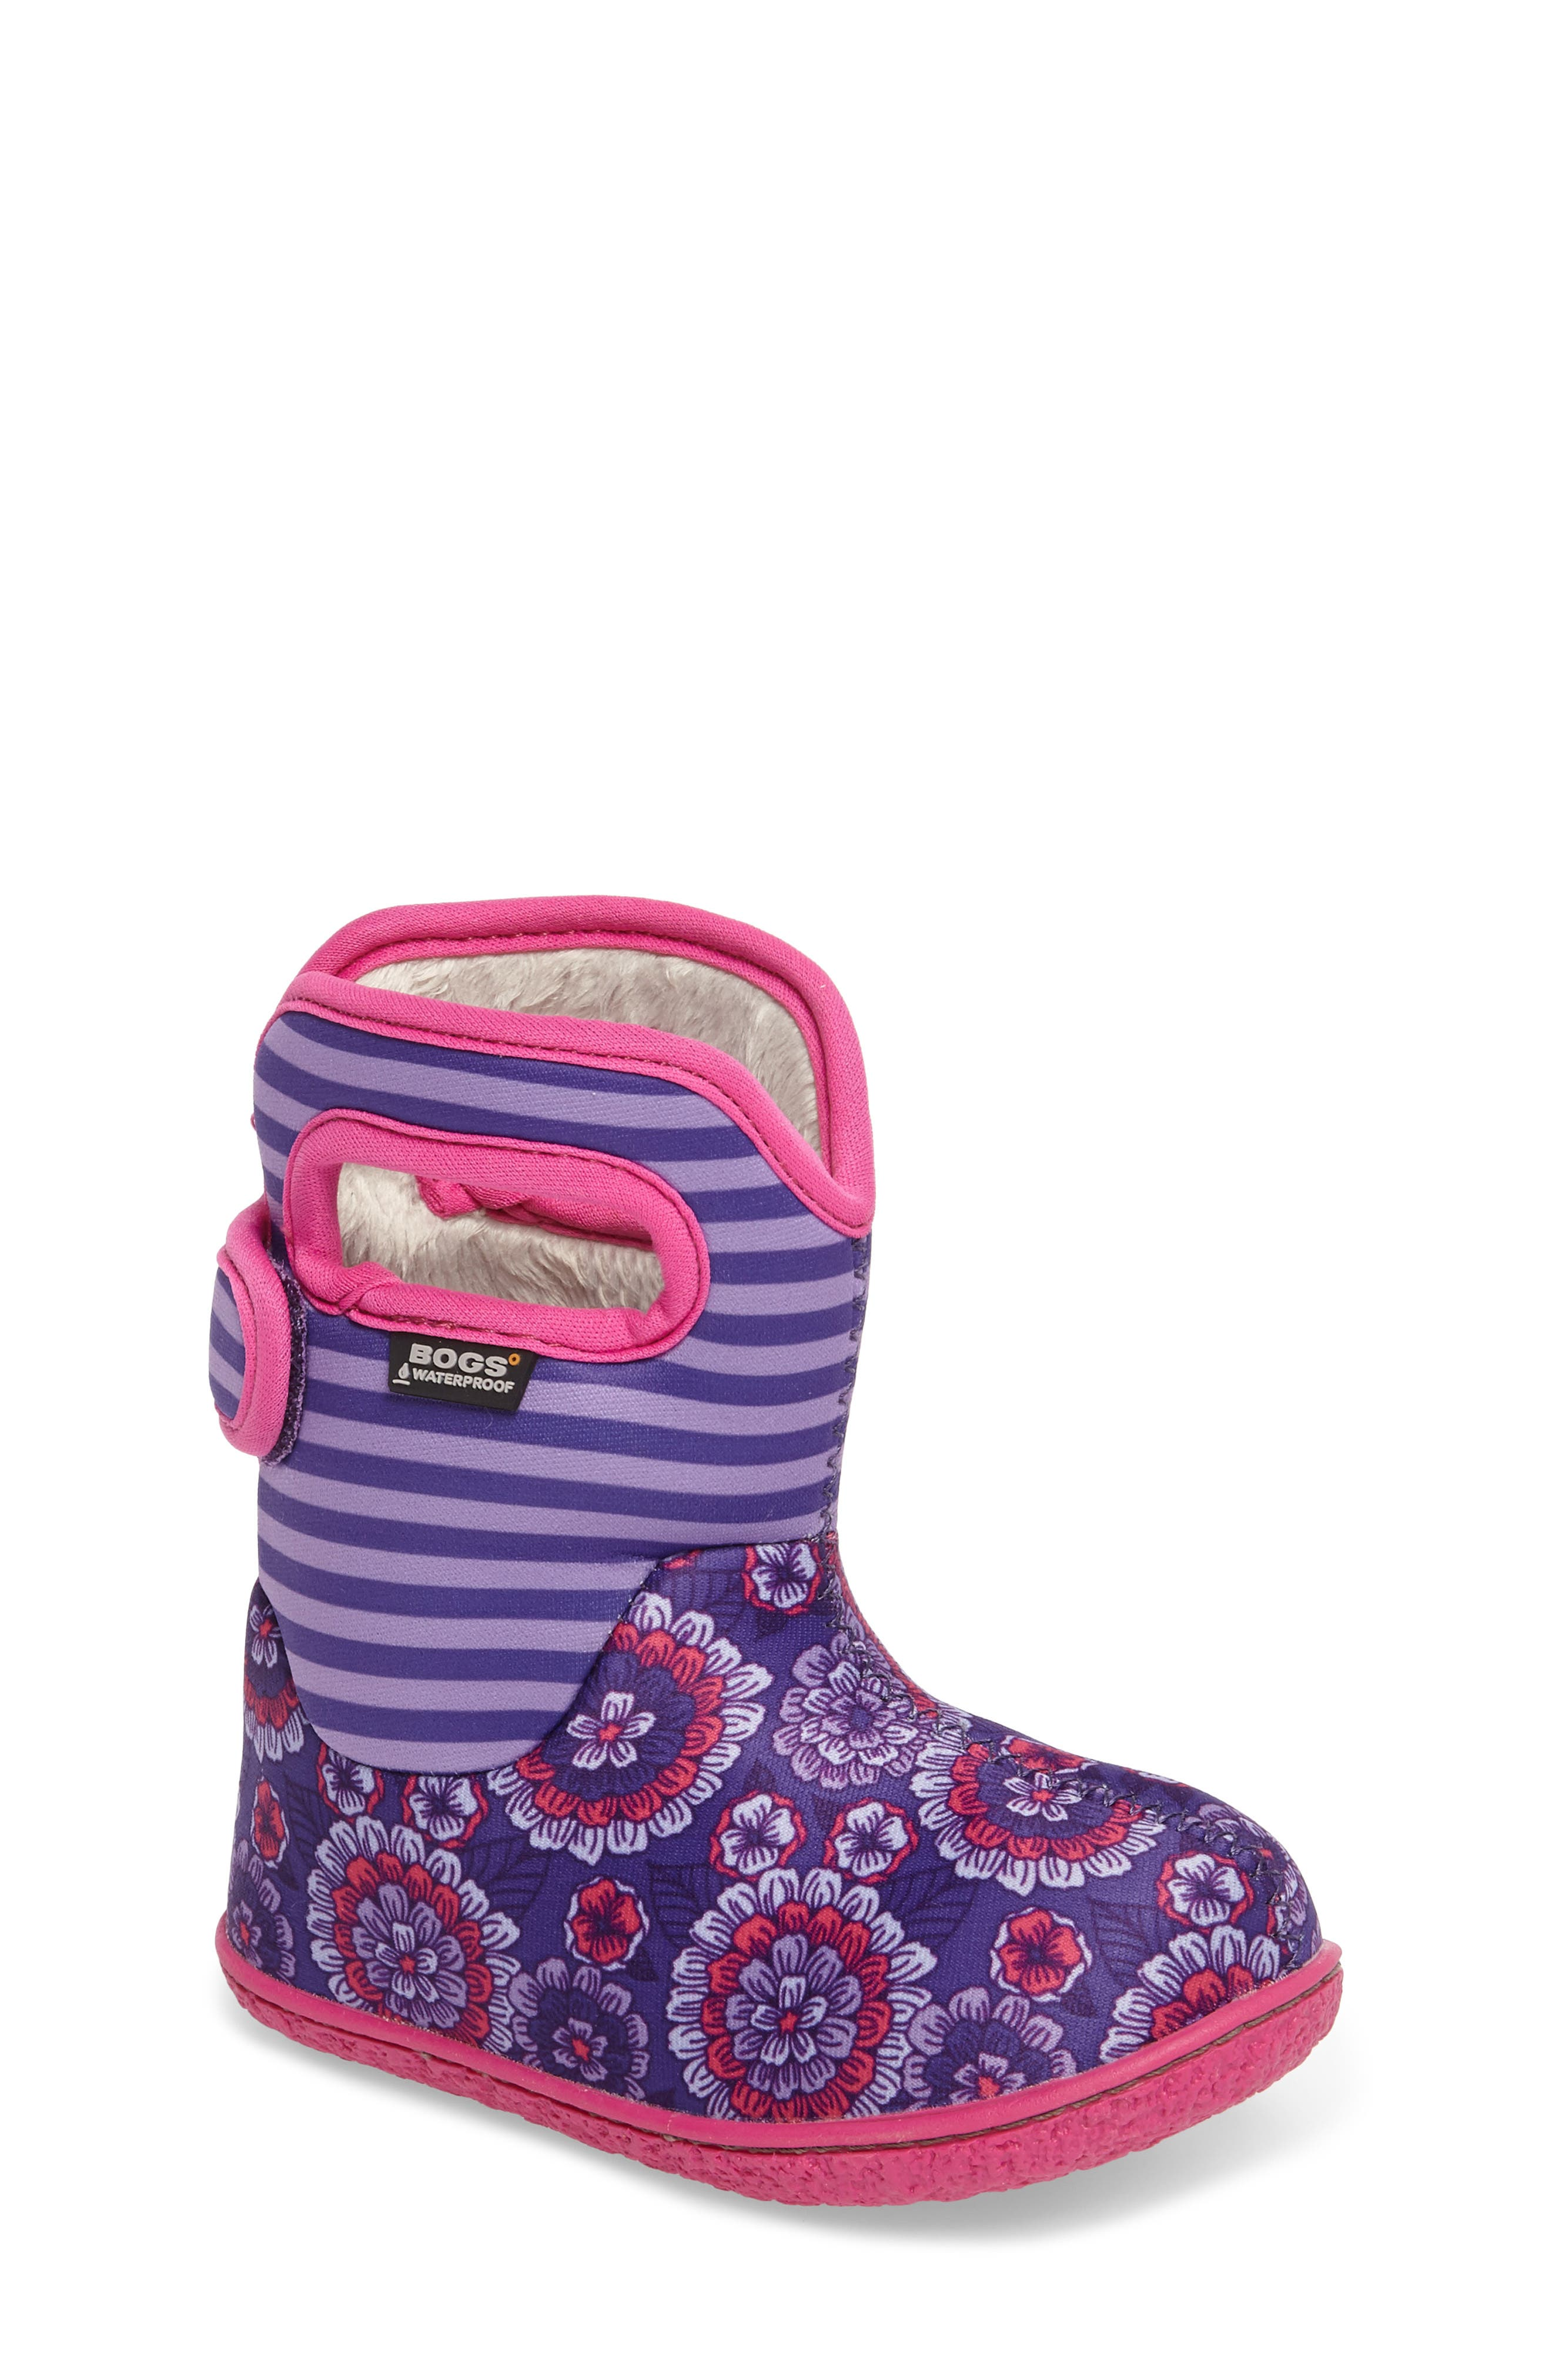 Baby Bogs Classic Pansies Washable Insulated Waterproof Boot,                         Main,                         color, PURPLE MULTI